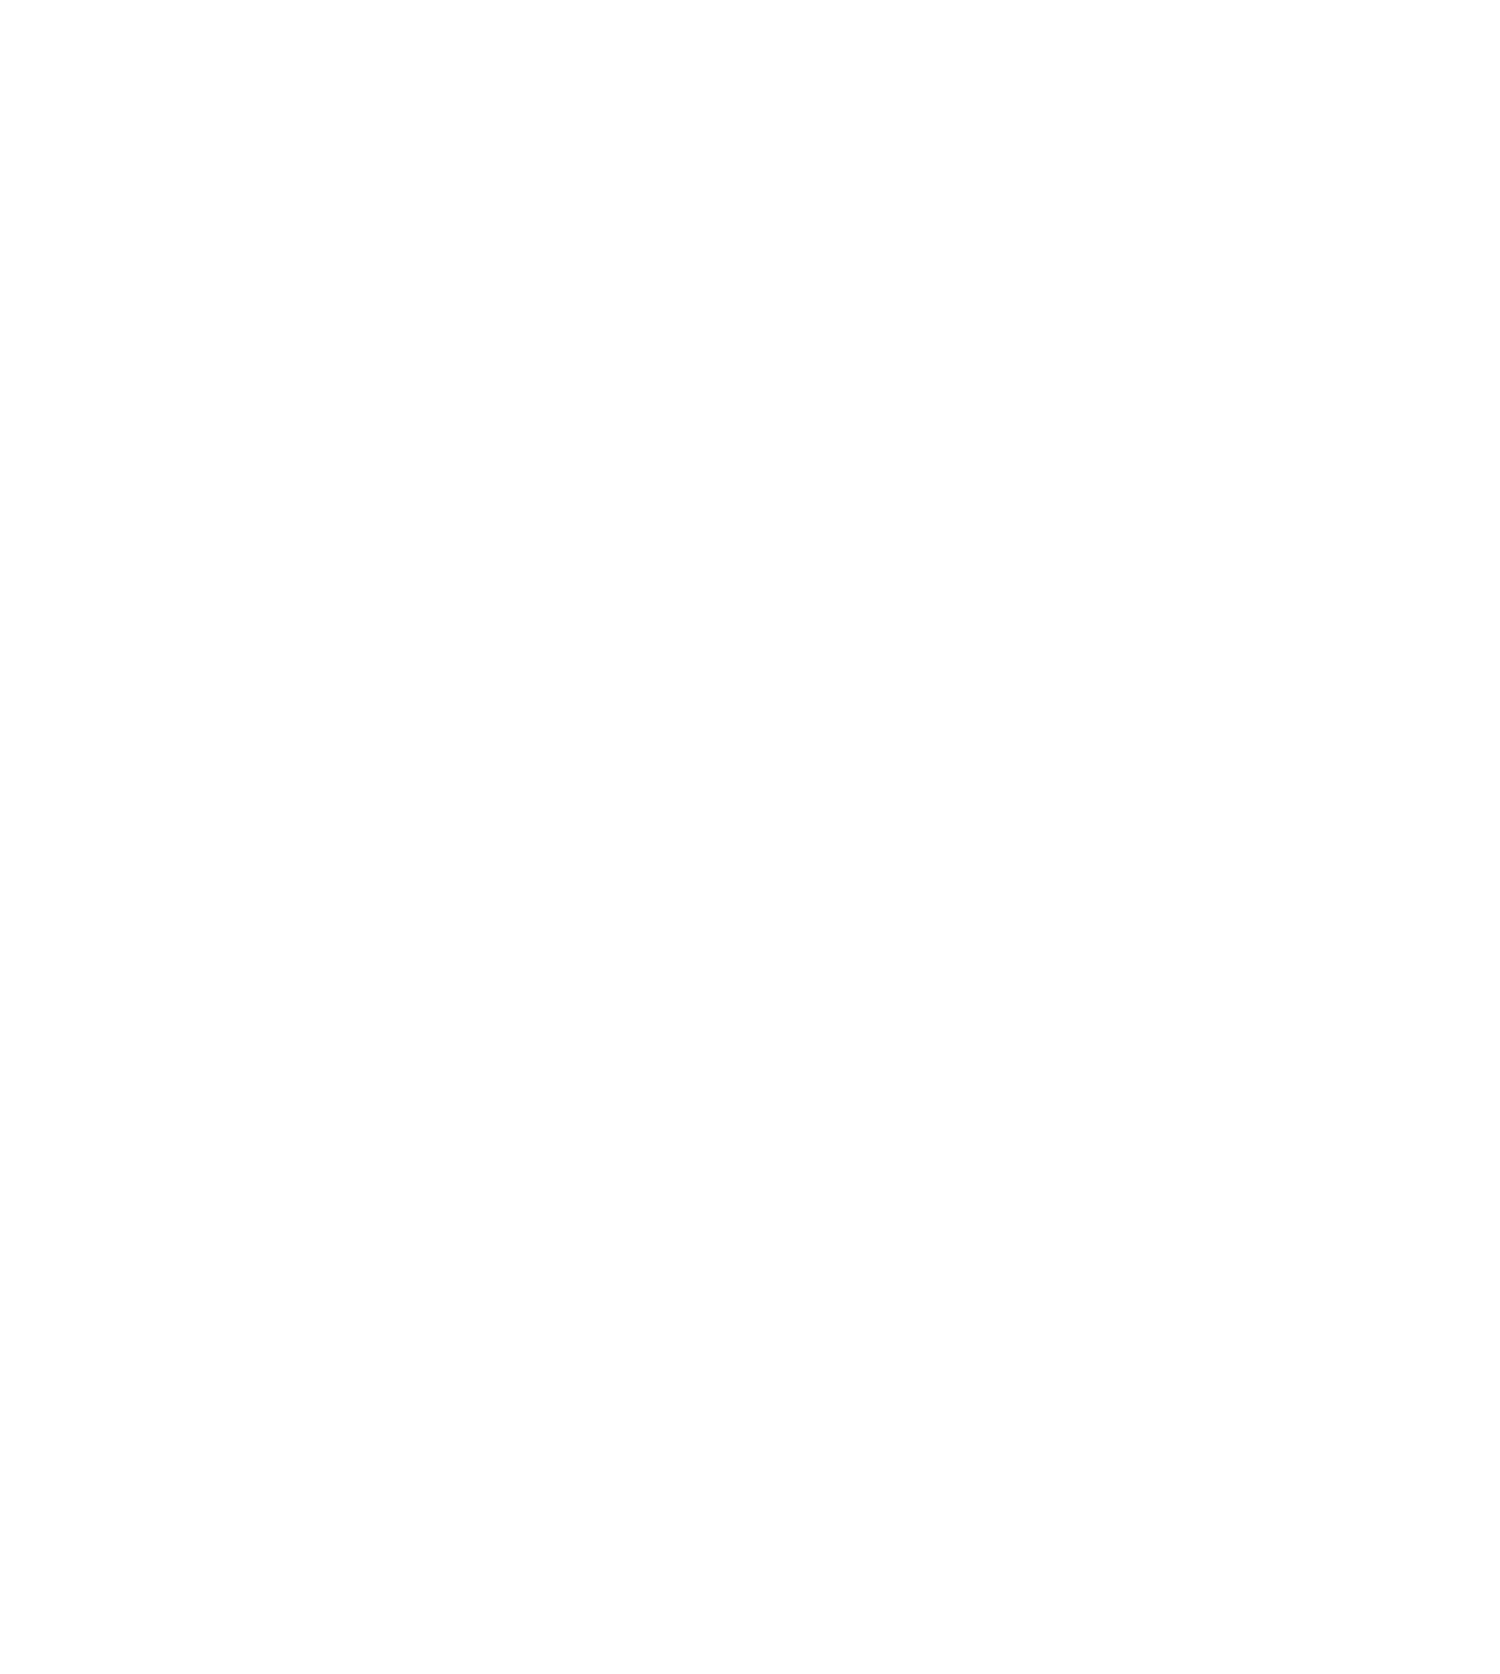 Film Mongers | Video Production Company London | Best Video Production Companies